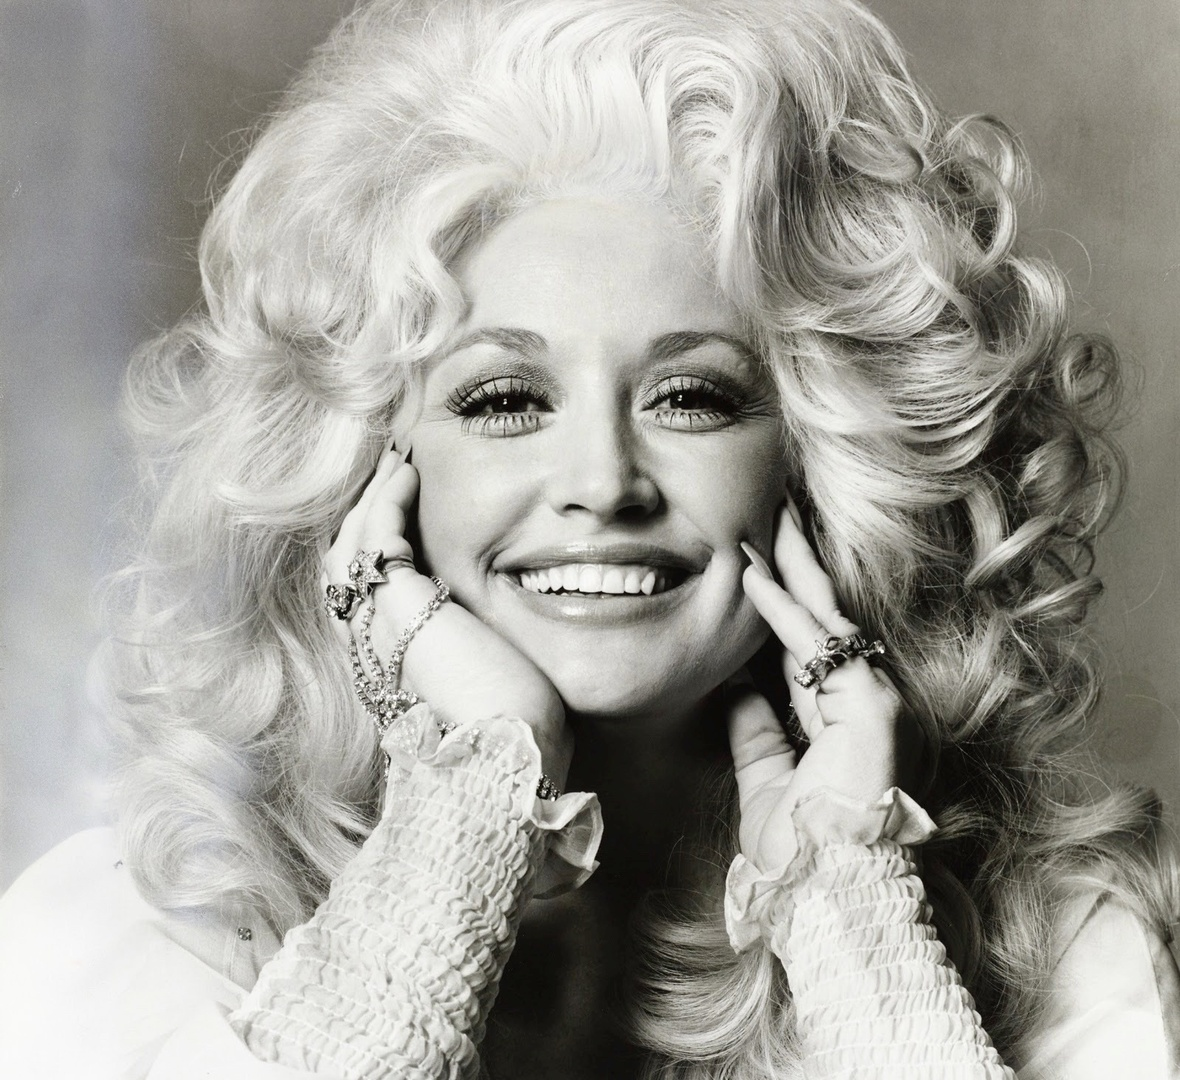 @DollyParton's photo on Dolly